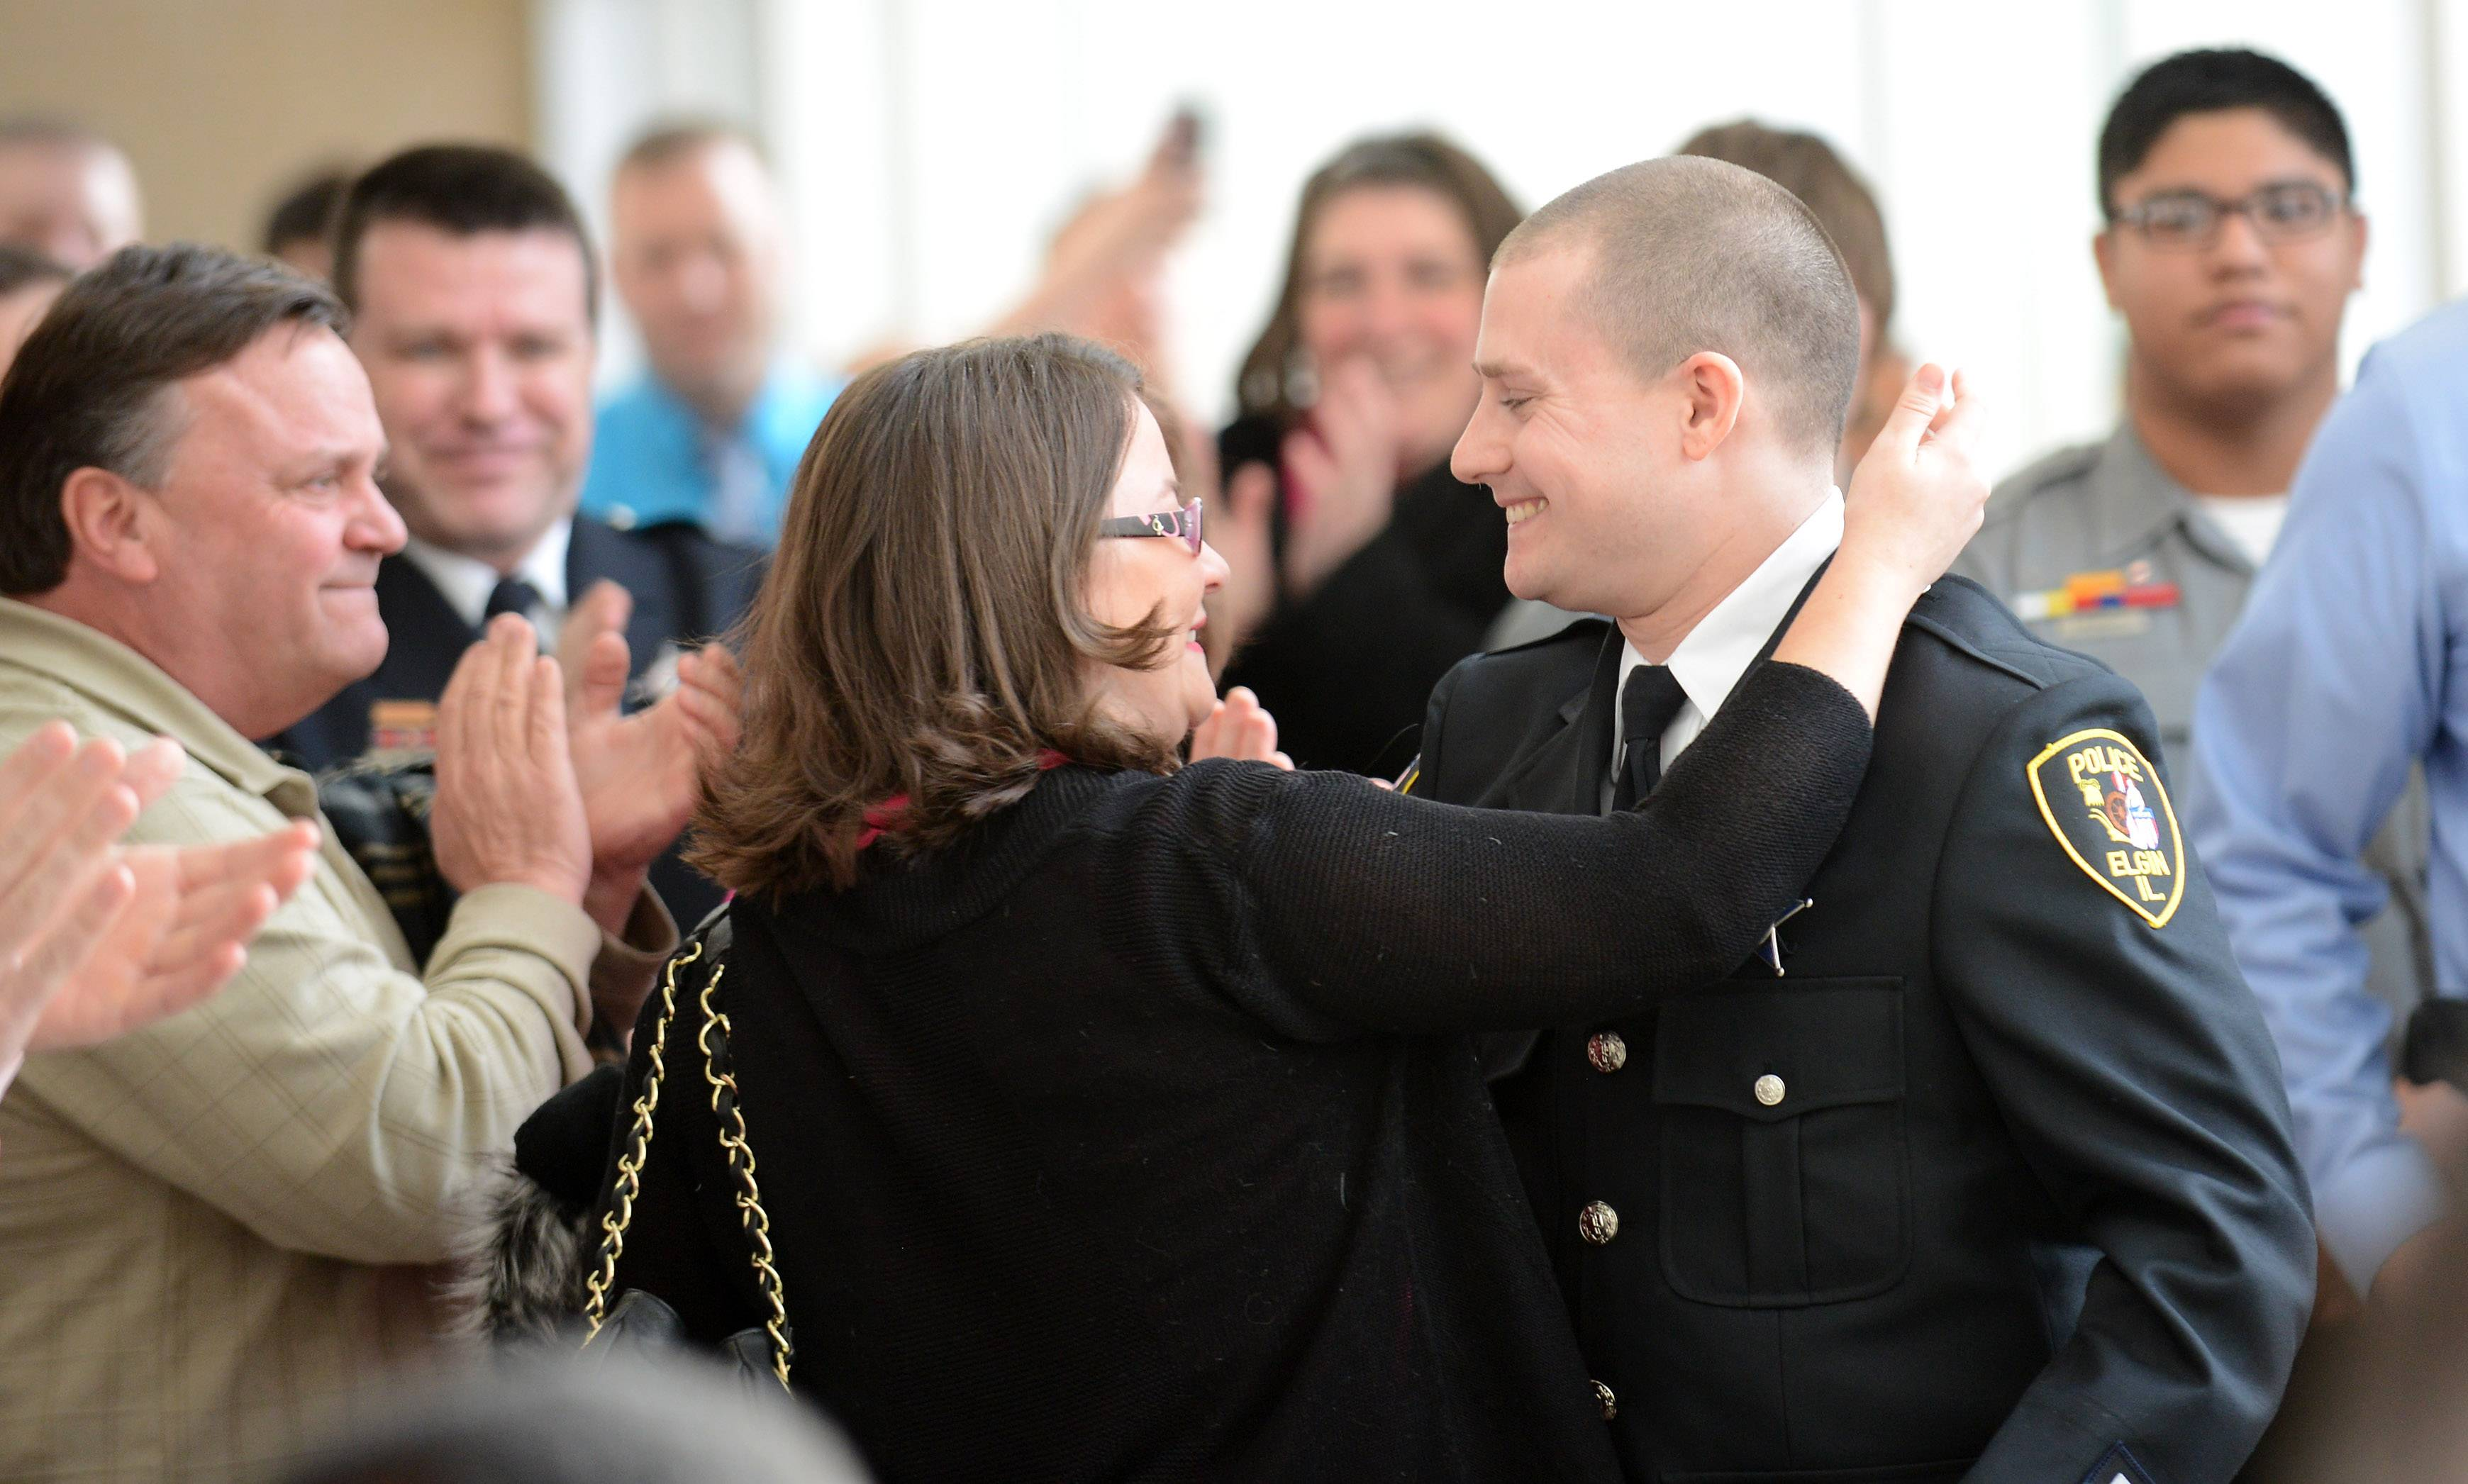 Rick West/rwest@dailyherald.com Officer Steven Alcorn gets congratulations from his wife Larissa after being named Rookie of the Year during the Elgin Police Department annual awards ceremony Monday.